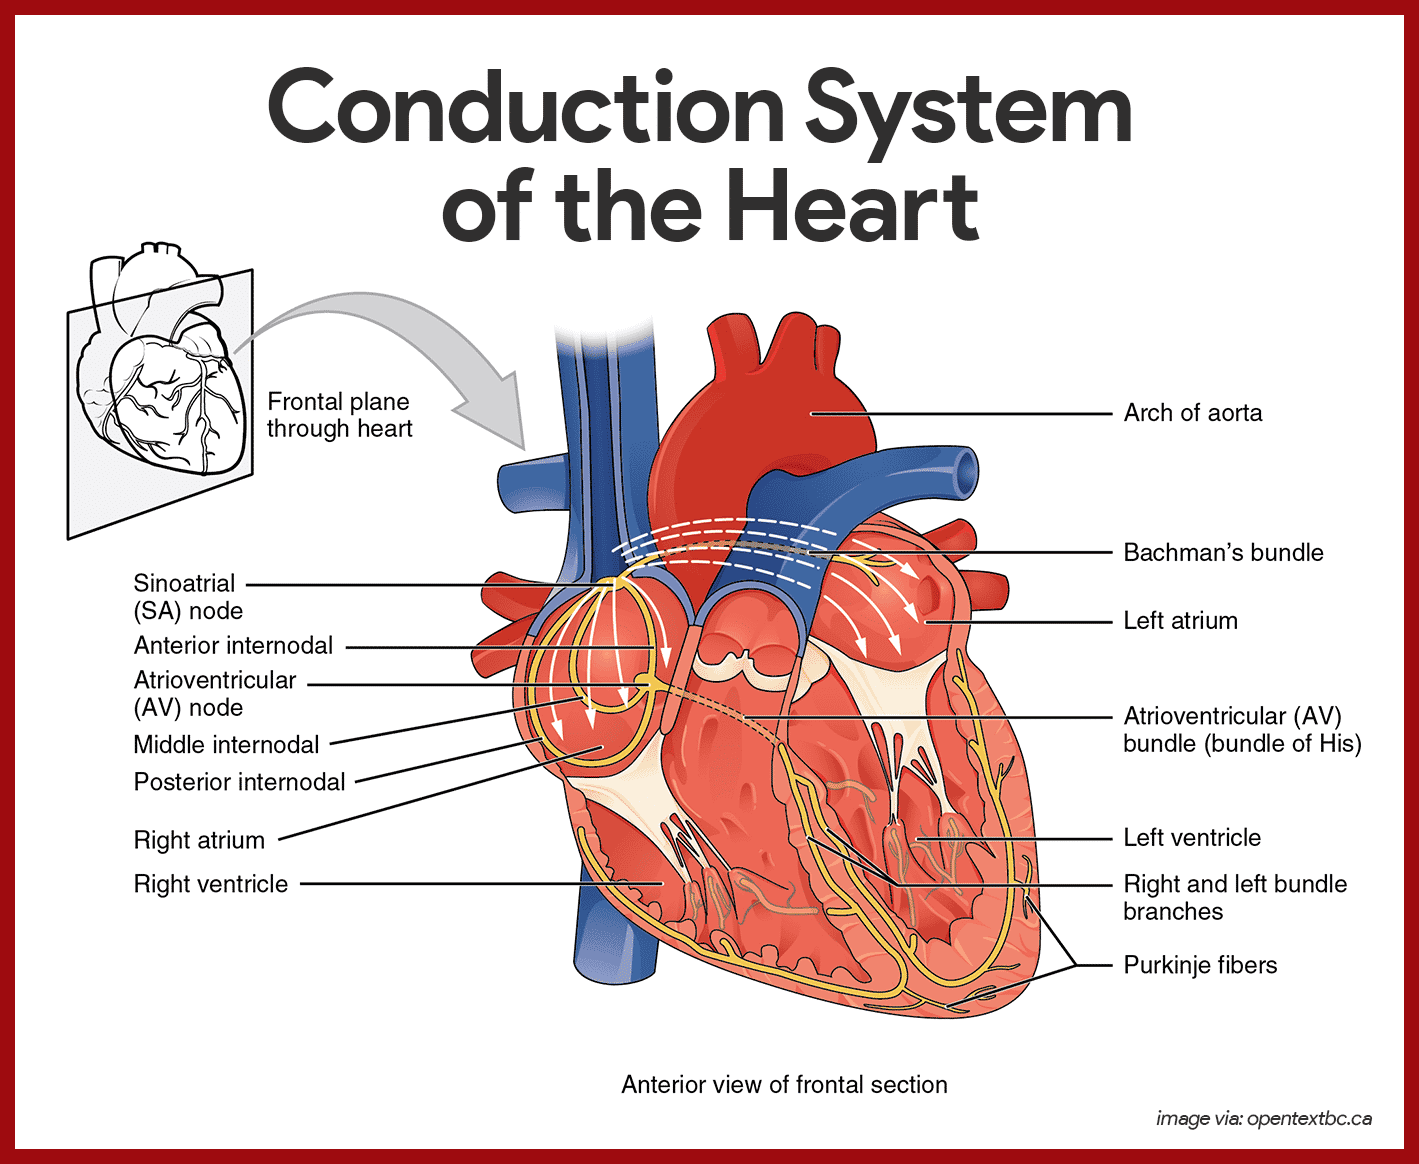 Cardiovascular System Anatomy And Physiology Study Guide For Nurses